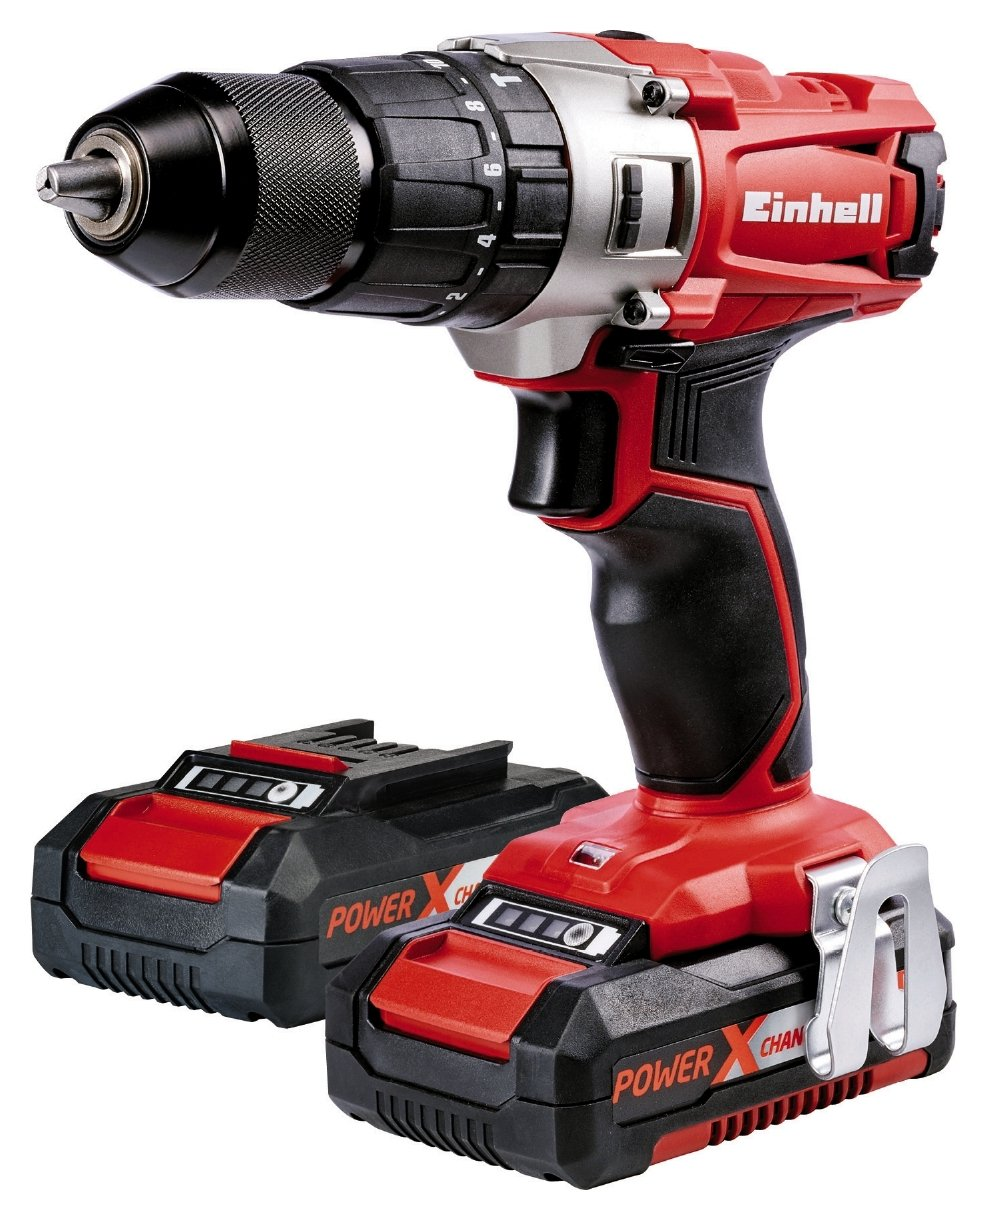 einhell power x change li ion cordless combi drill kit 18v review. Black Bedroom Furniture Sets. Home Design Ideas